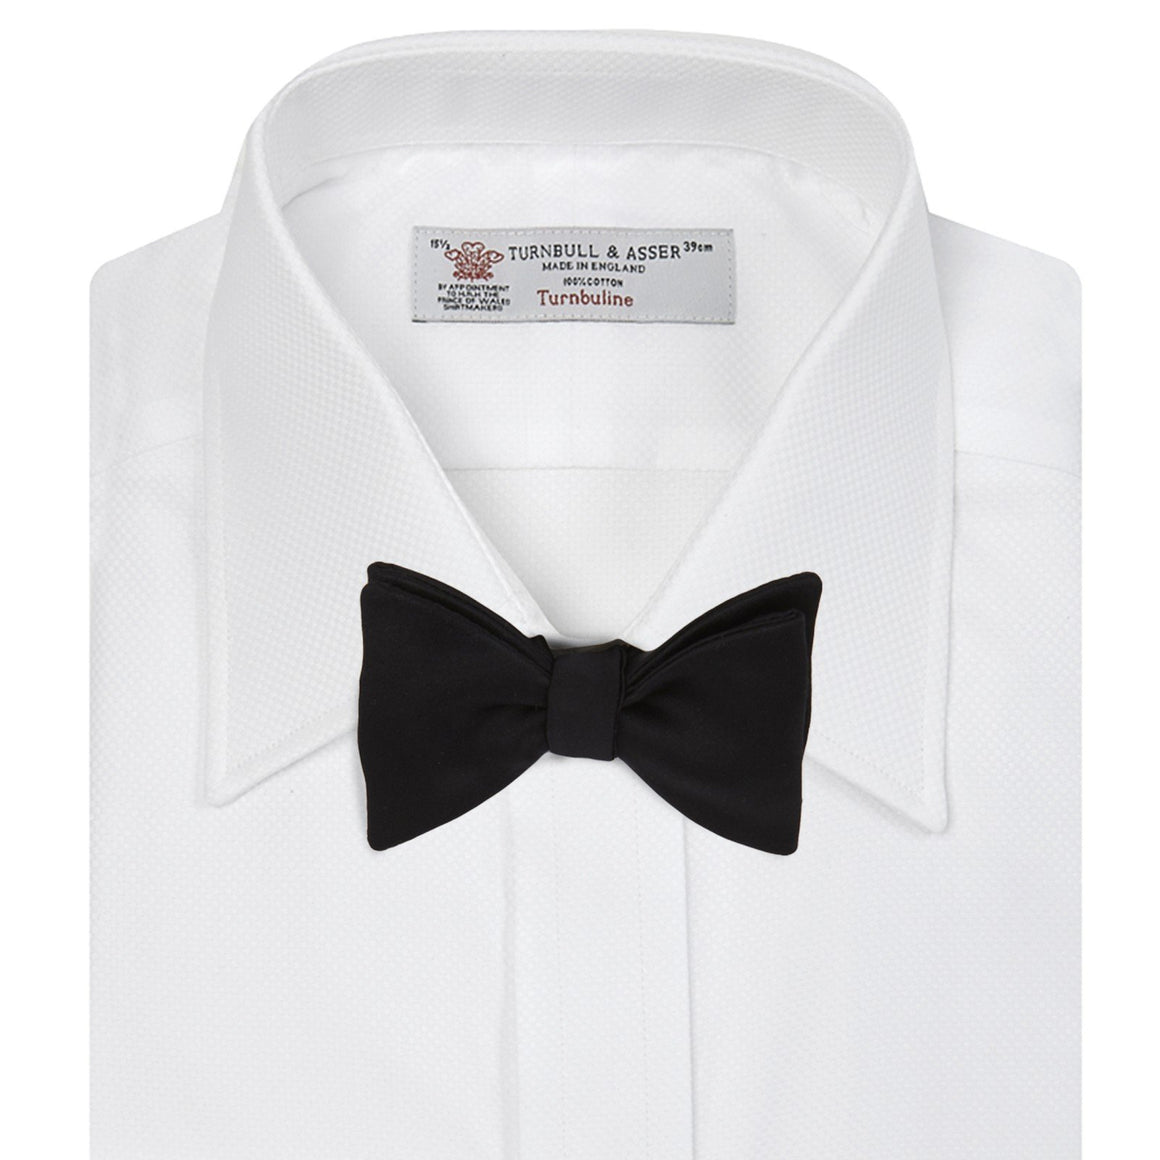 White Cotton Dress Shirt By Turnbull & Asser - Casino Royale Edition